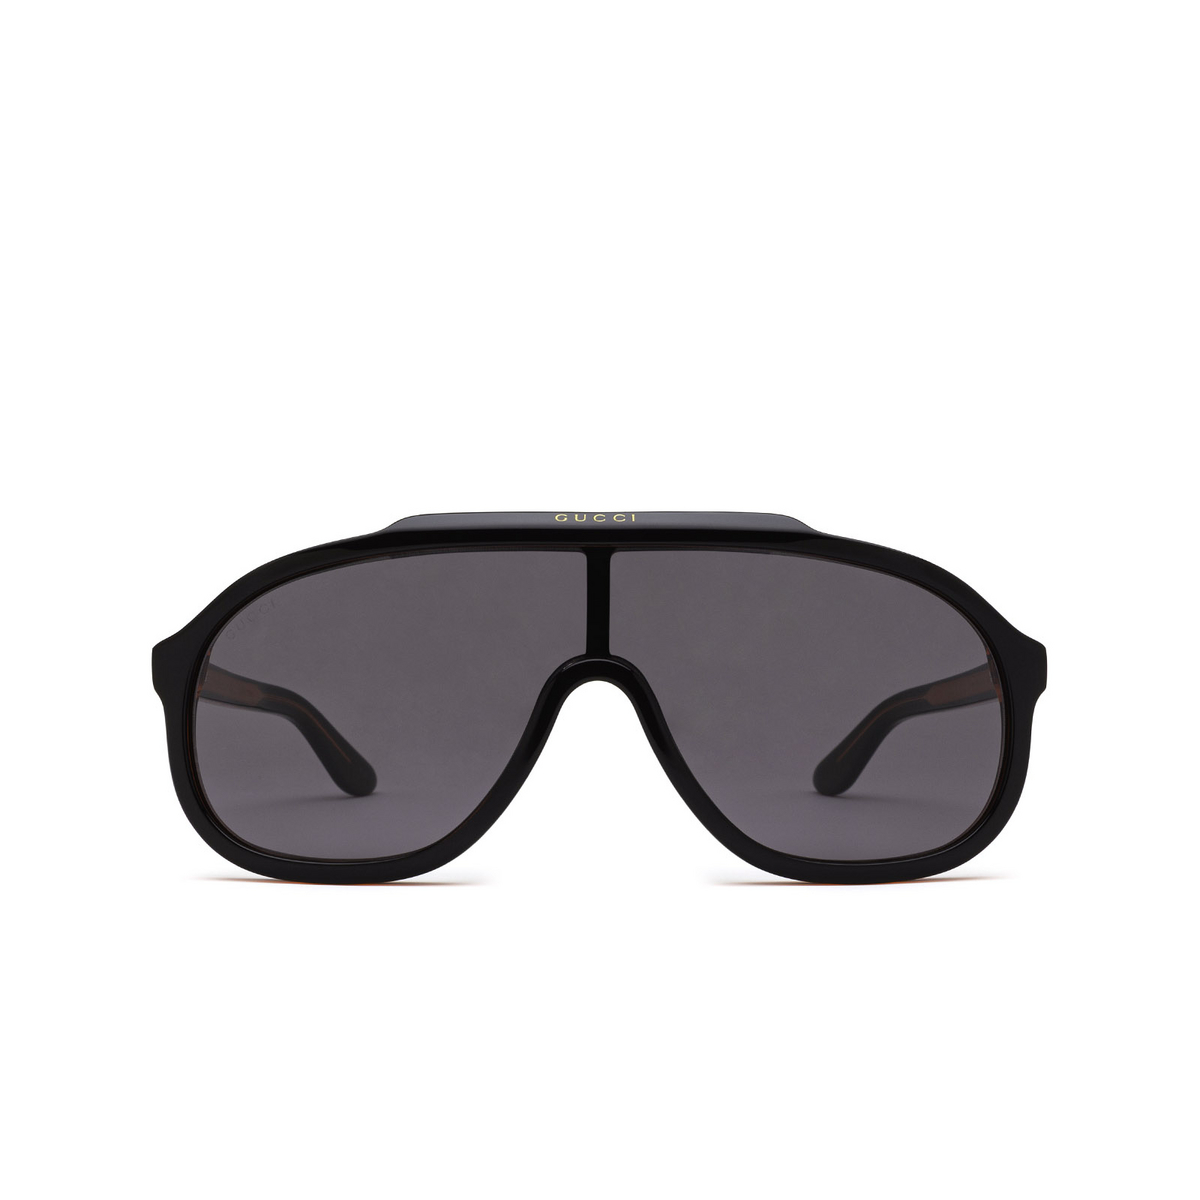 Gucci® Mask Sunglasses: GG1038S color Black & Red 001 - front view.